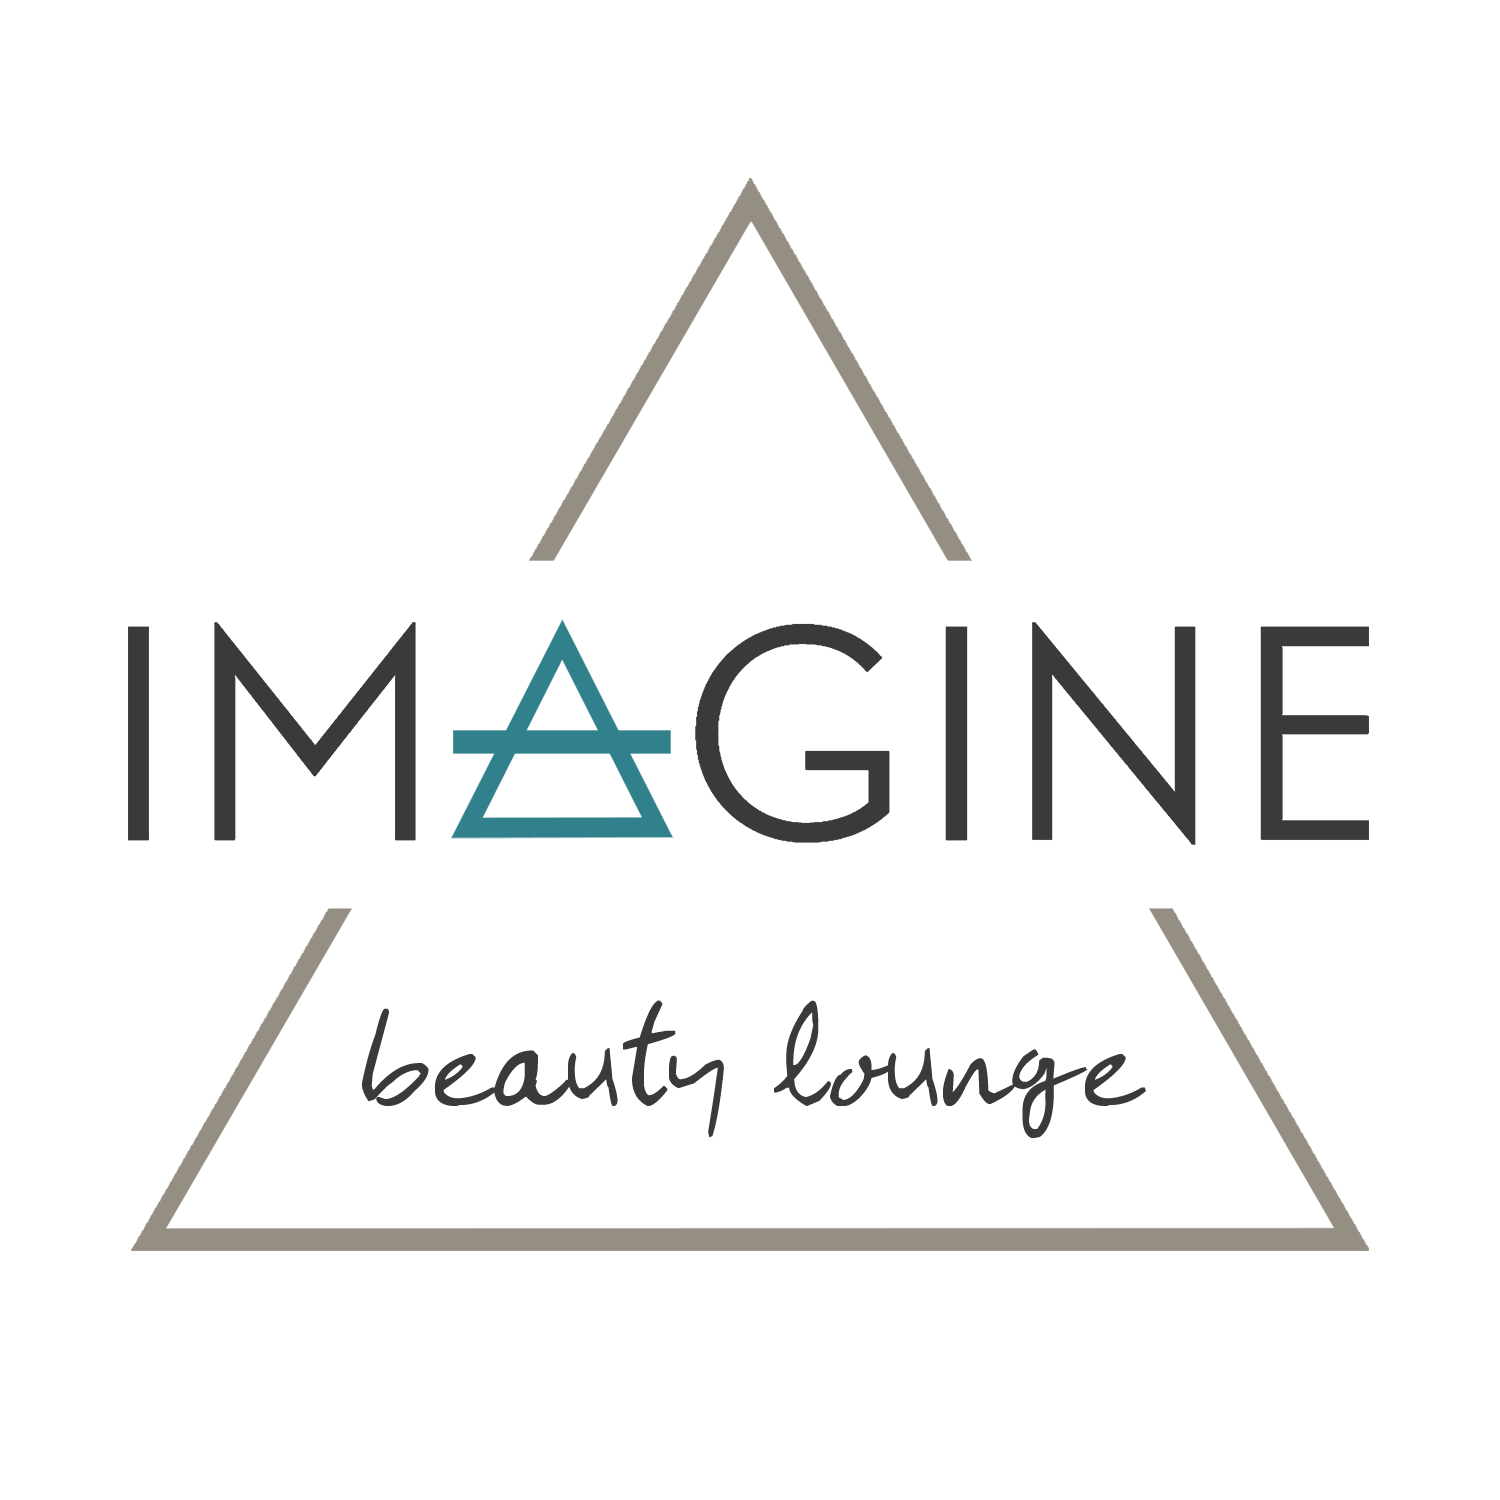 Imagine Beauty Lounge